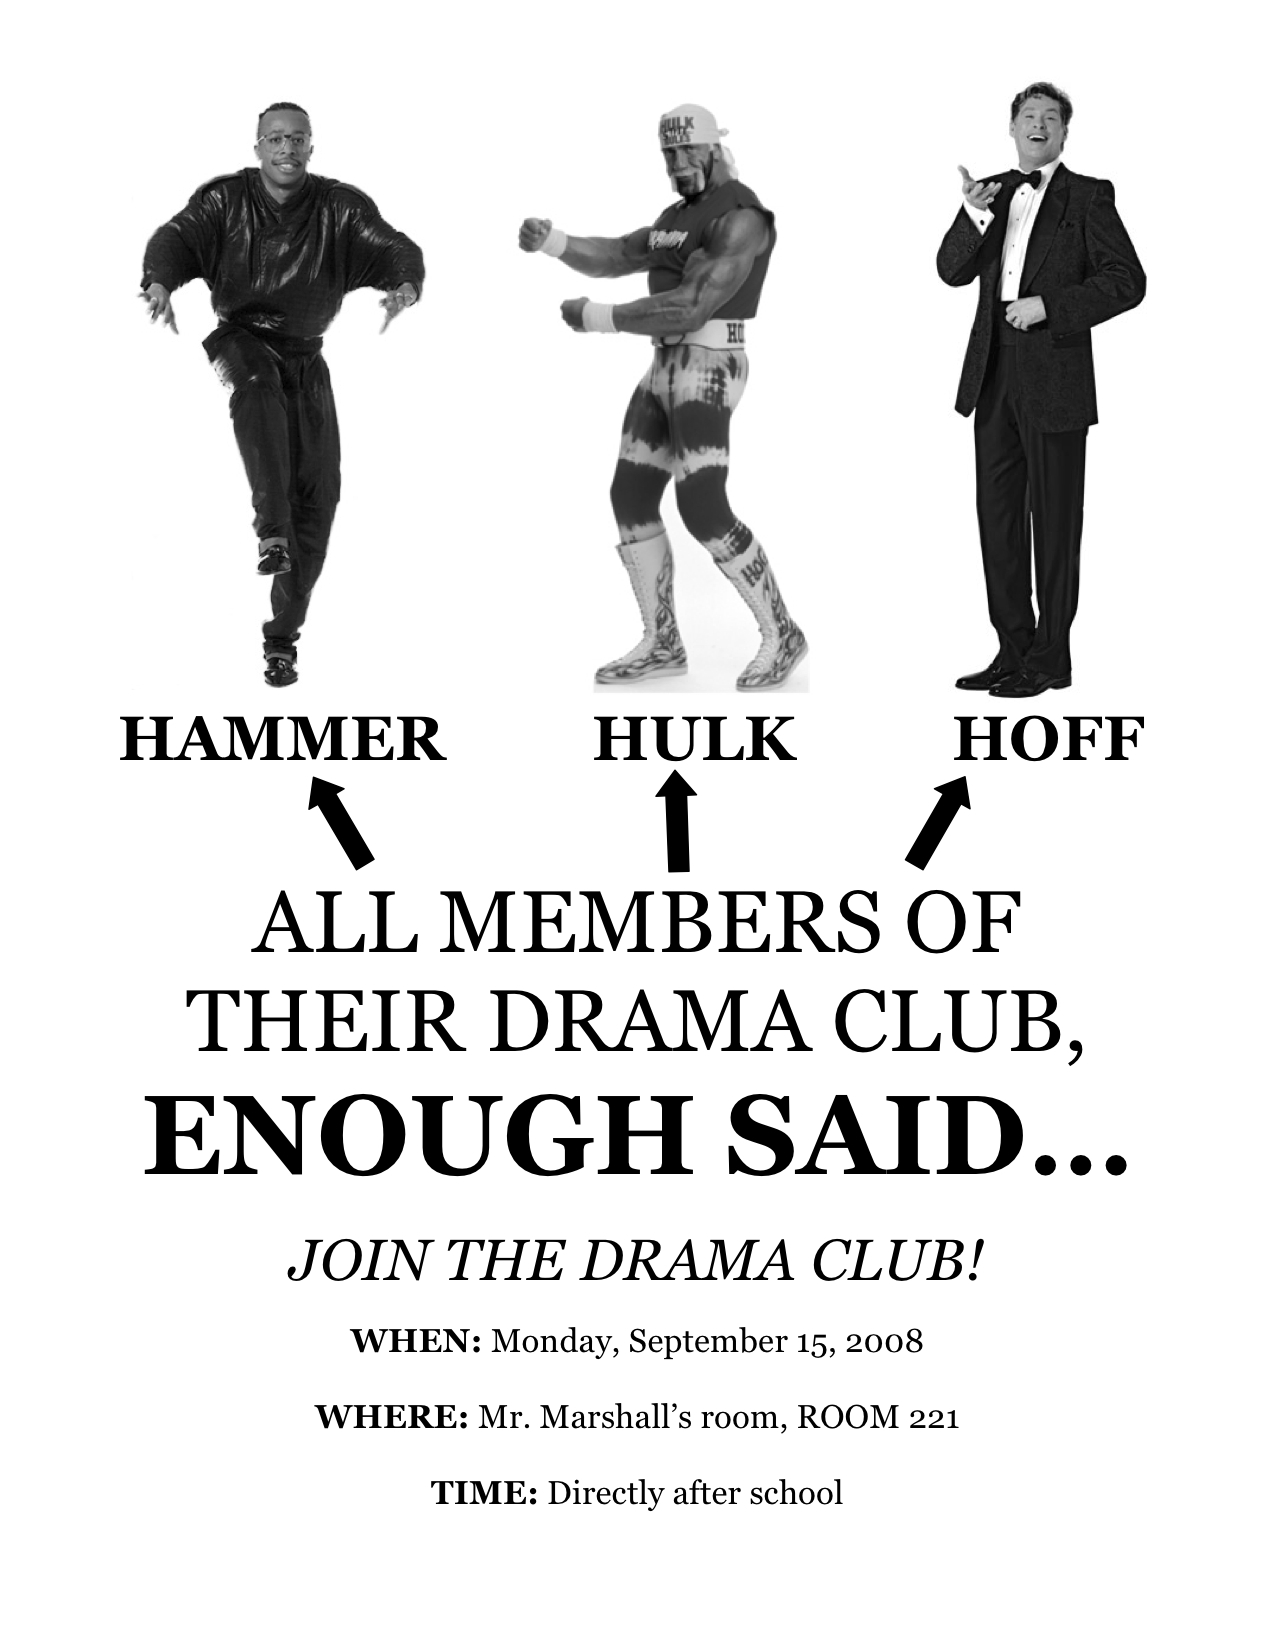 RECRUITMENT POSTER #1 FOR OUR FIRST EVER DRAMA CLUB